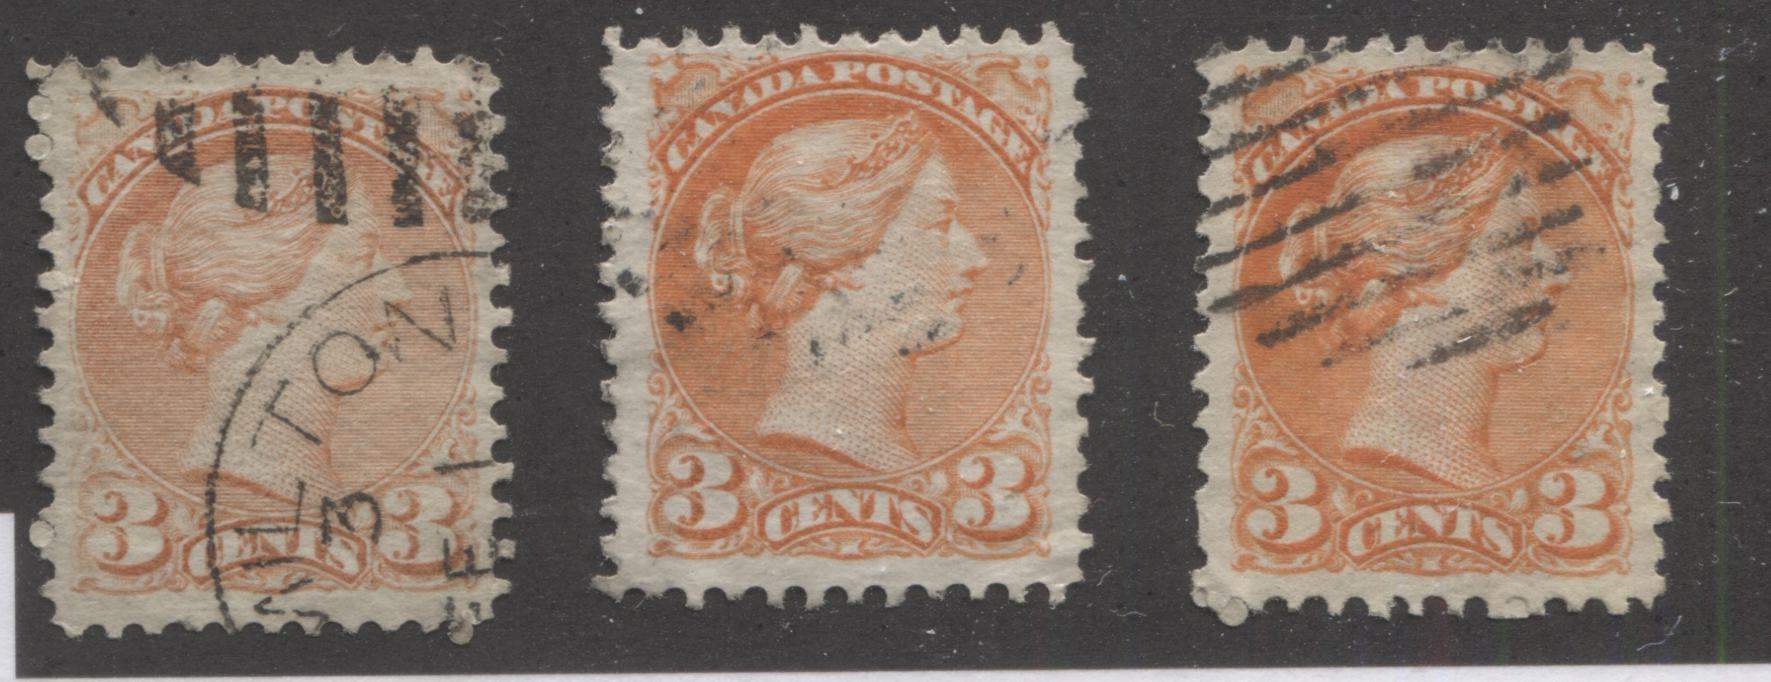 Canada #37, 37c 3c Orange Red & Dull Red Queen Victoria, 1870-1897 Small Queen Issue, Three Very Fine Used Examples of Early and Mid-Montreal Printings, Perf. 12 Brixton Chrome